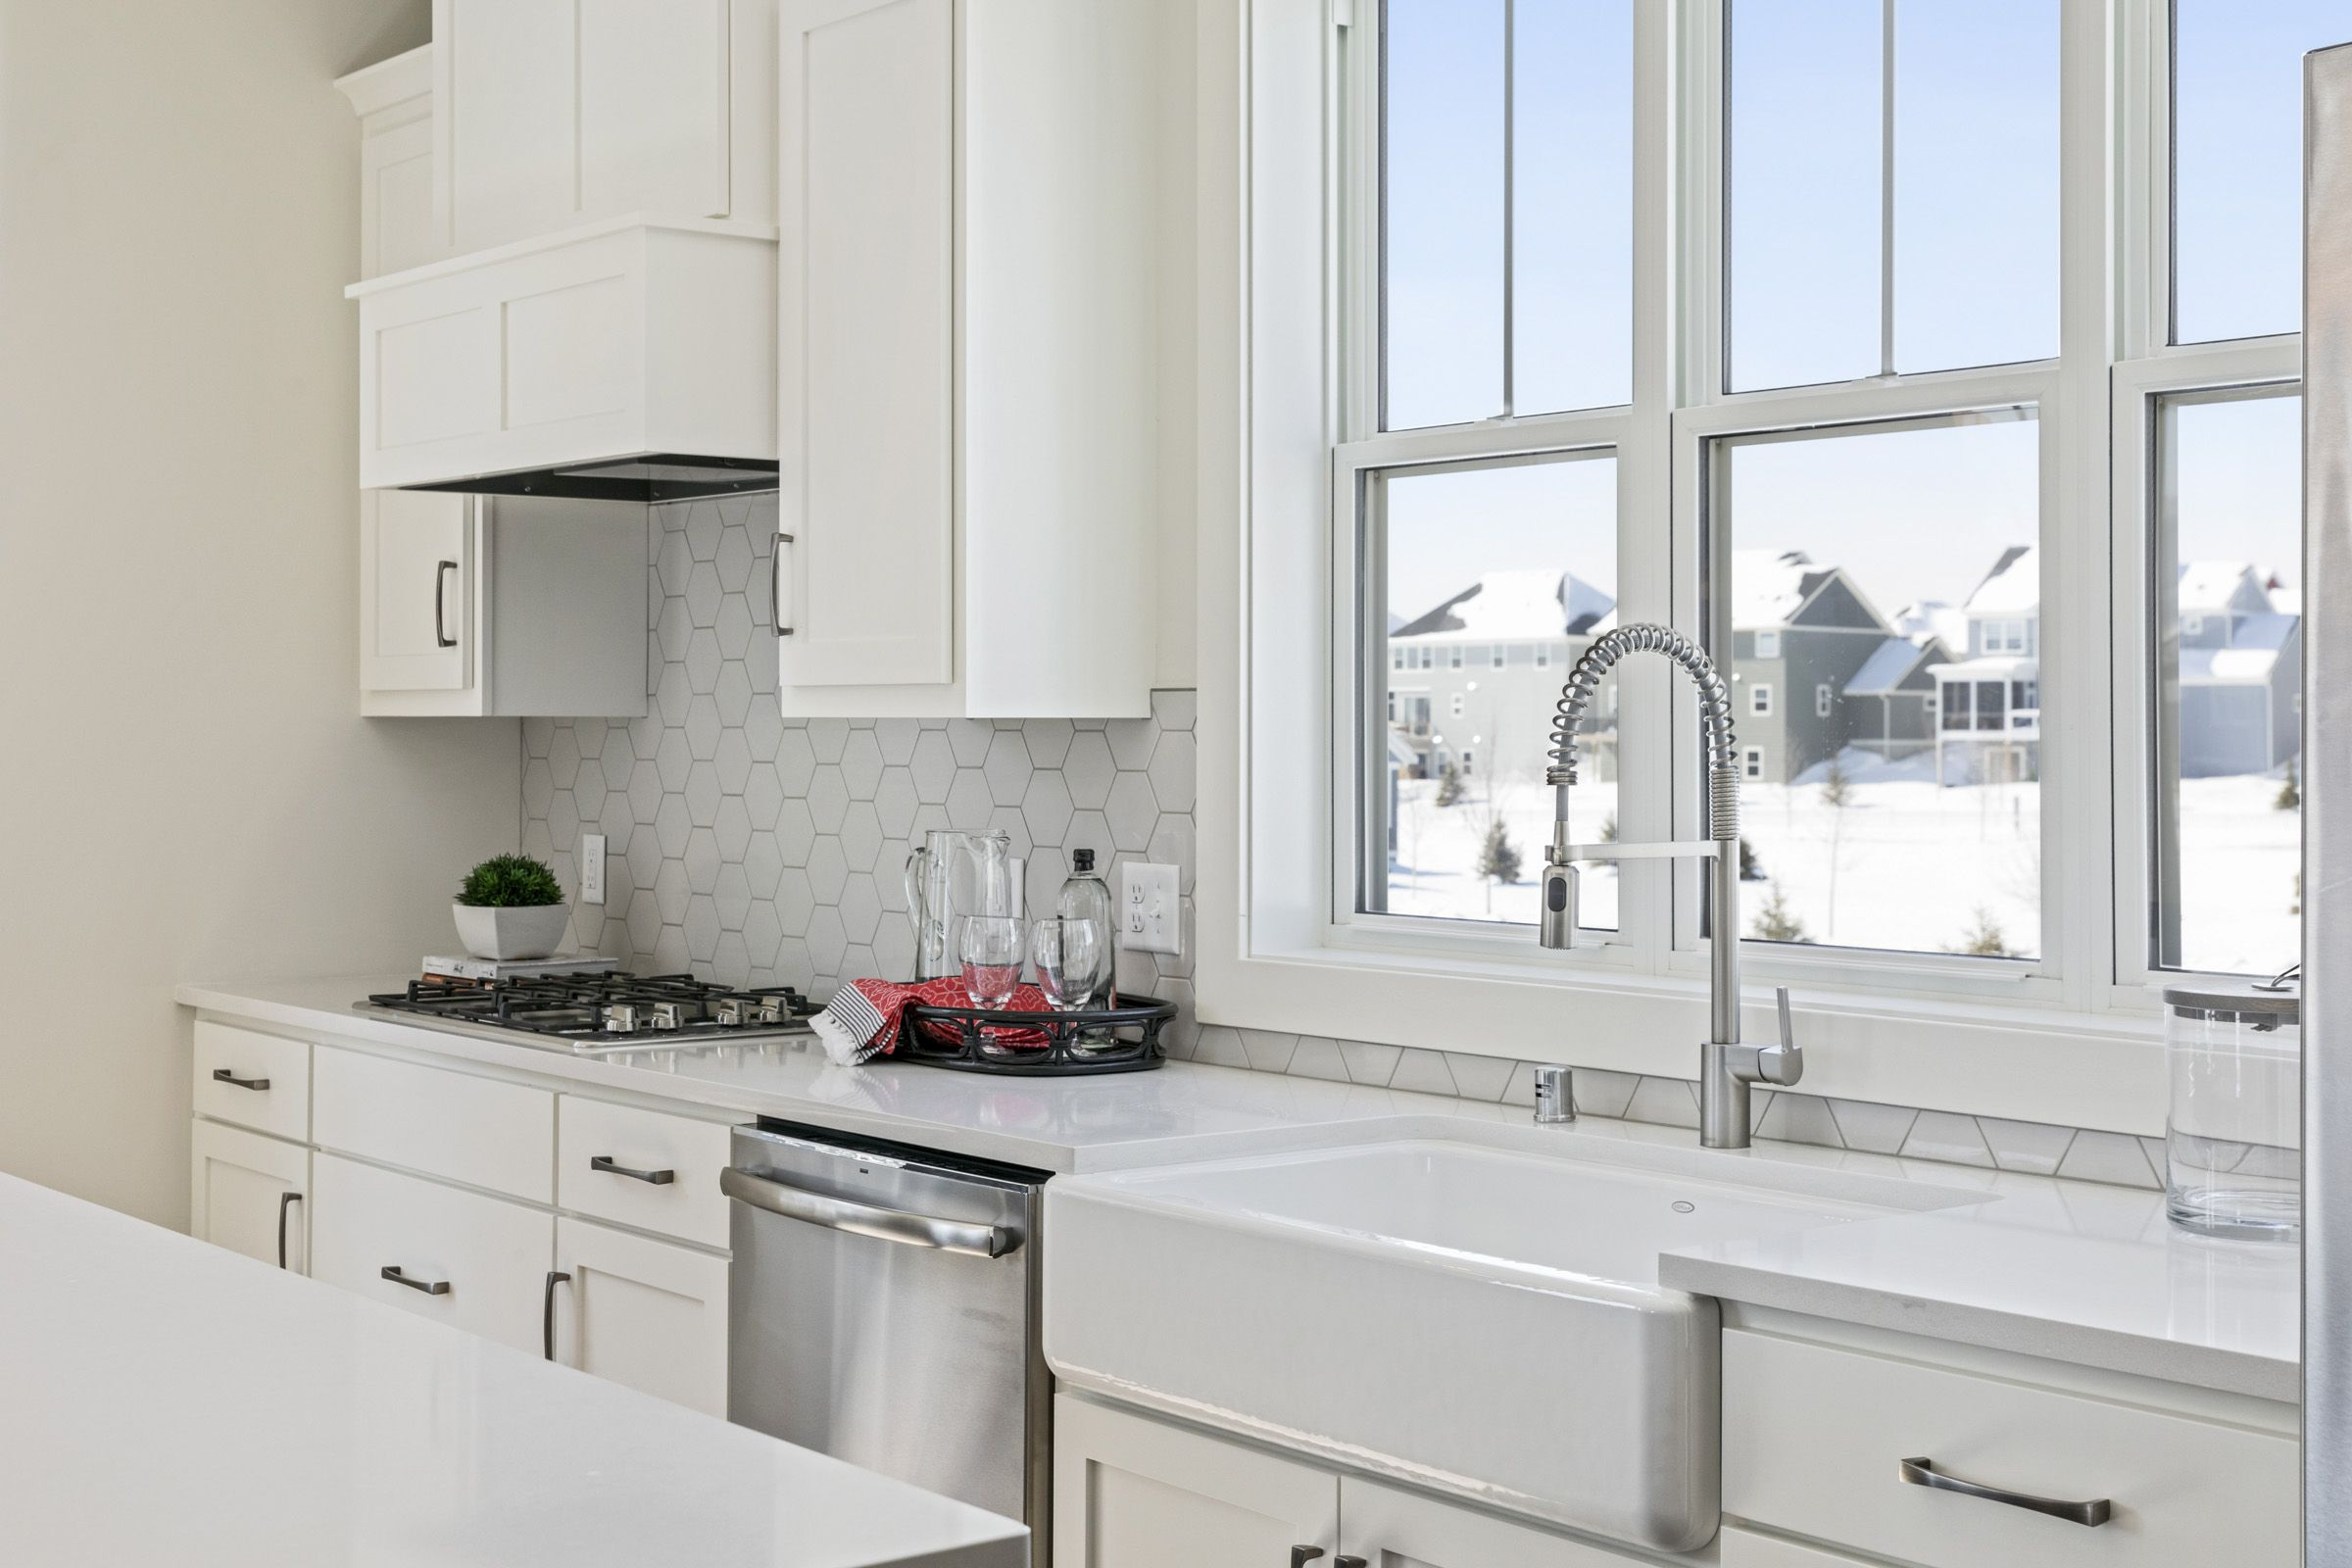 Farmhouse Sink Custom Cabinets Gorgeous View 1850 Floor Plan Home Kitchens Kitchen Inspirations Home Builders